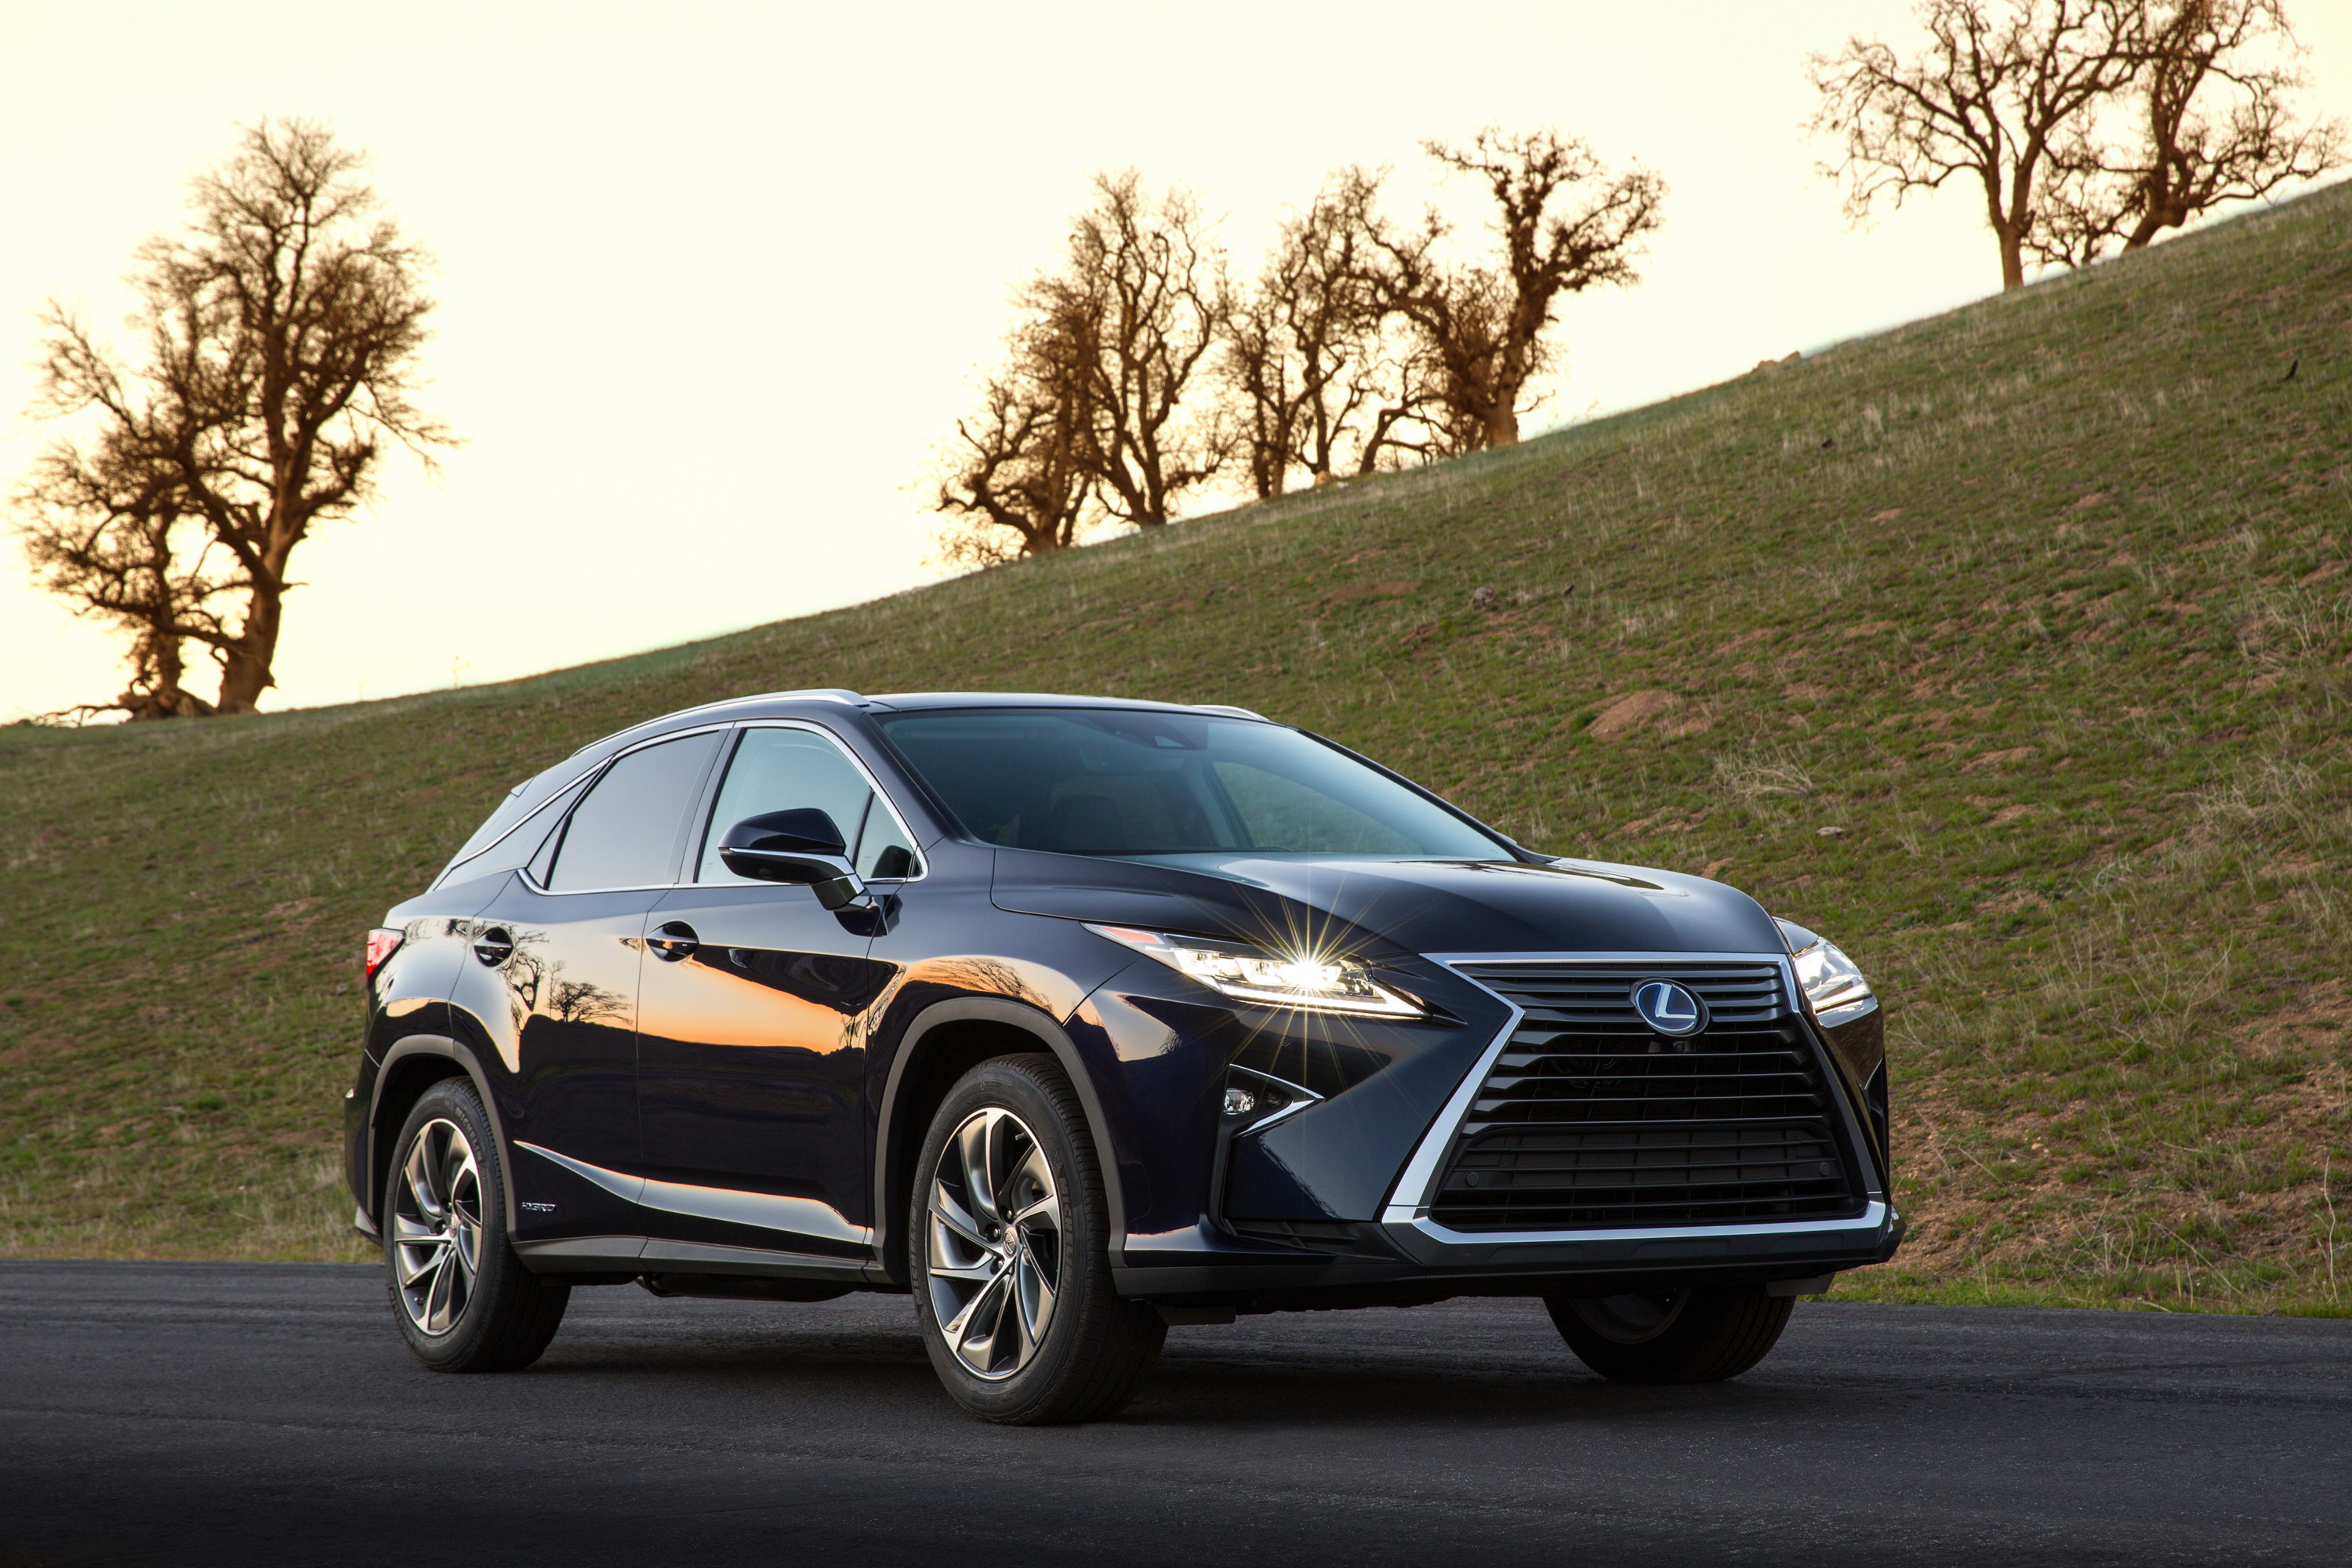 2018 Lexus RX L fers Three Rows Seating For 6 7 And Tri